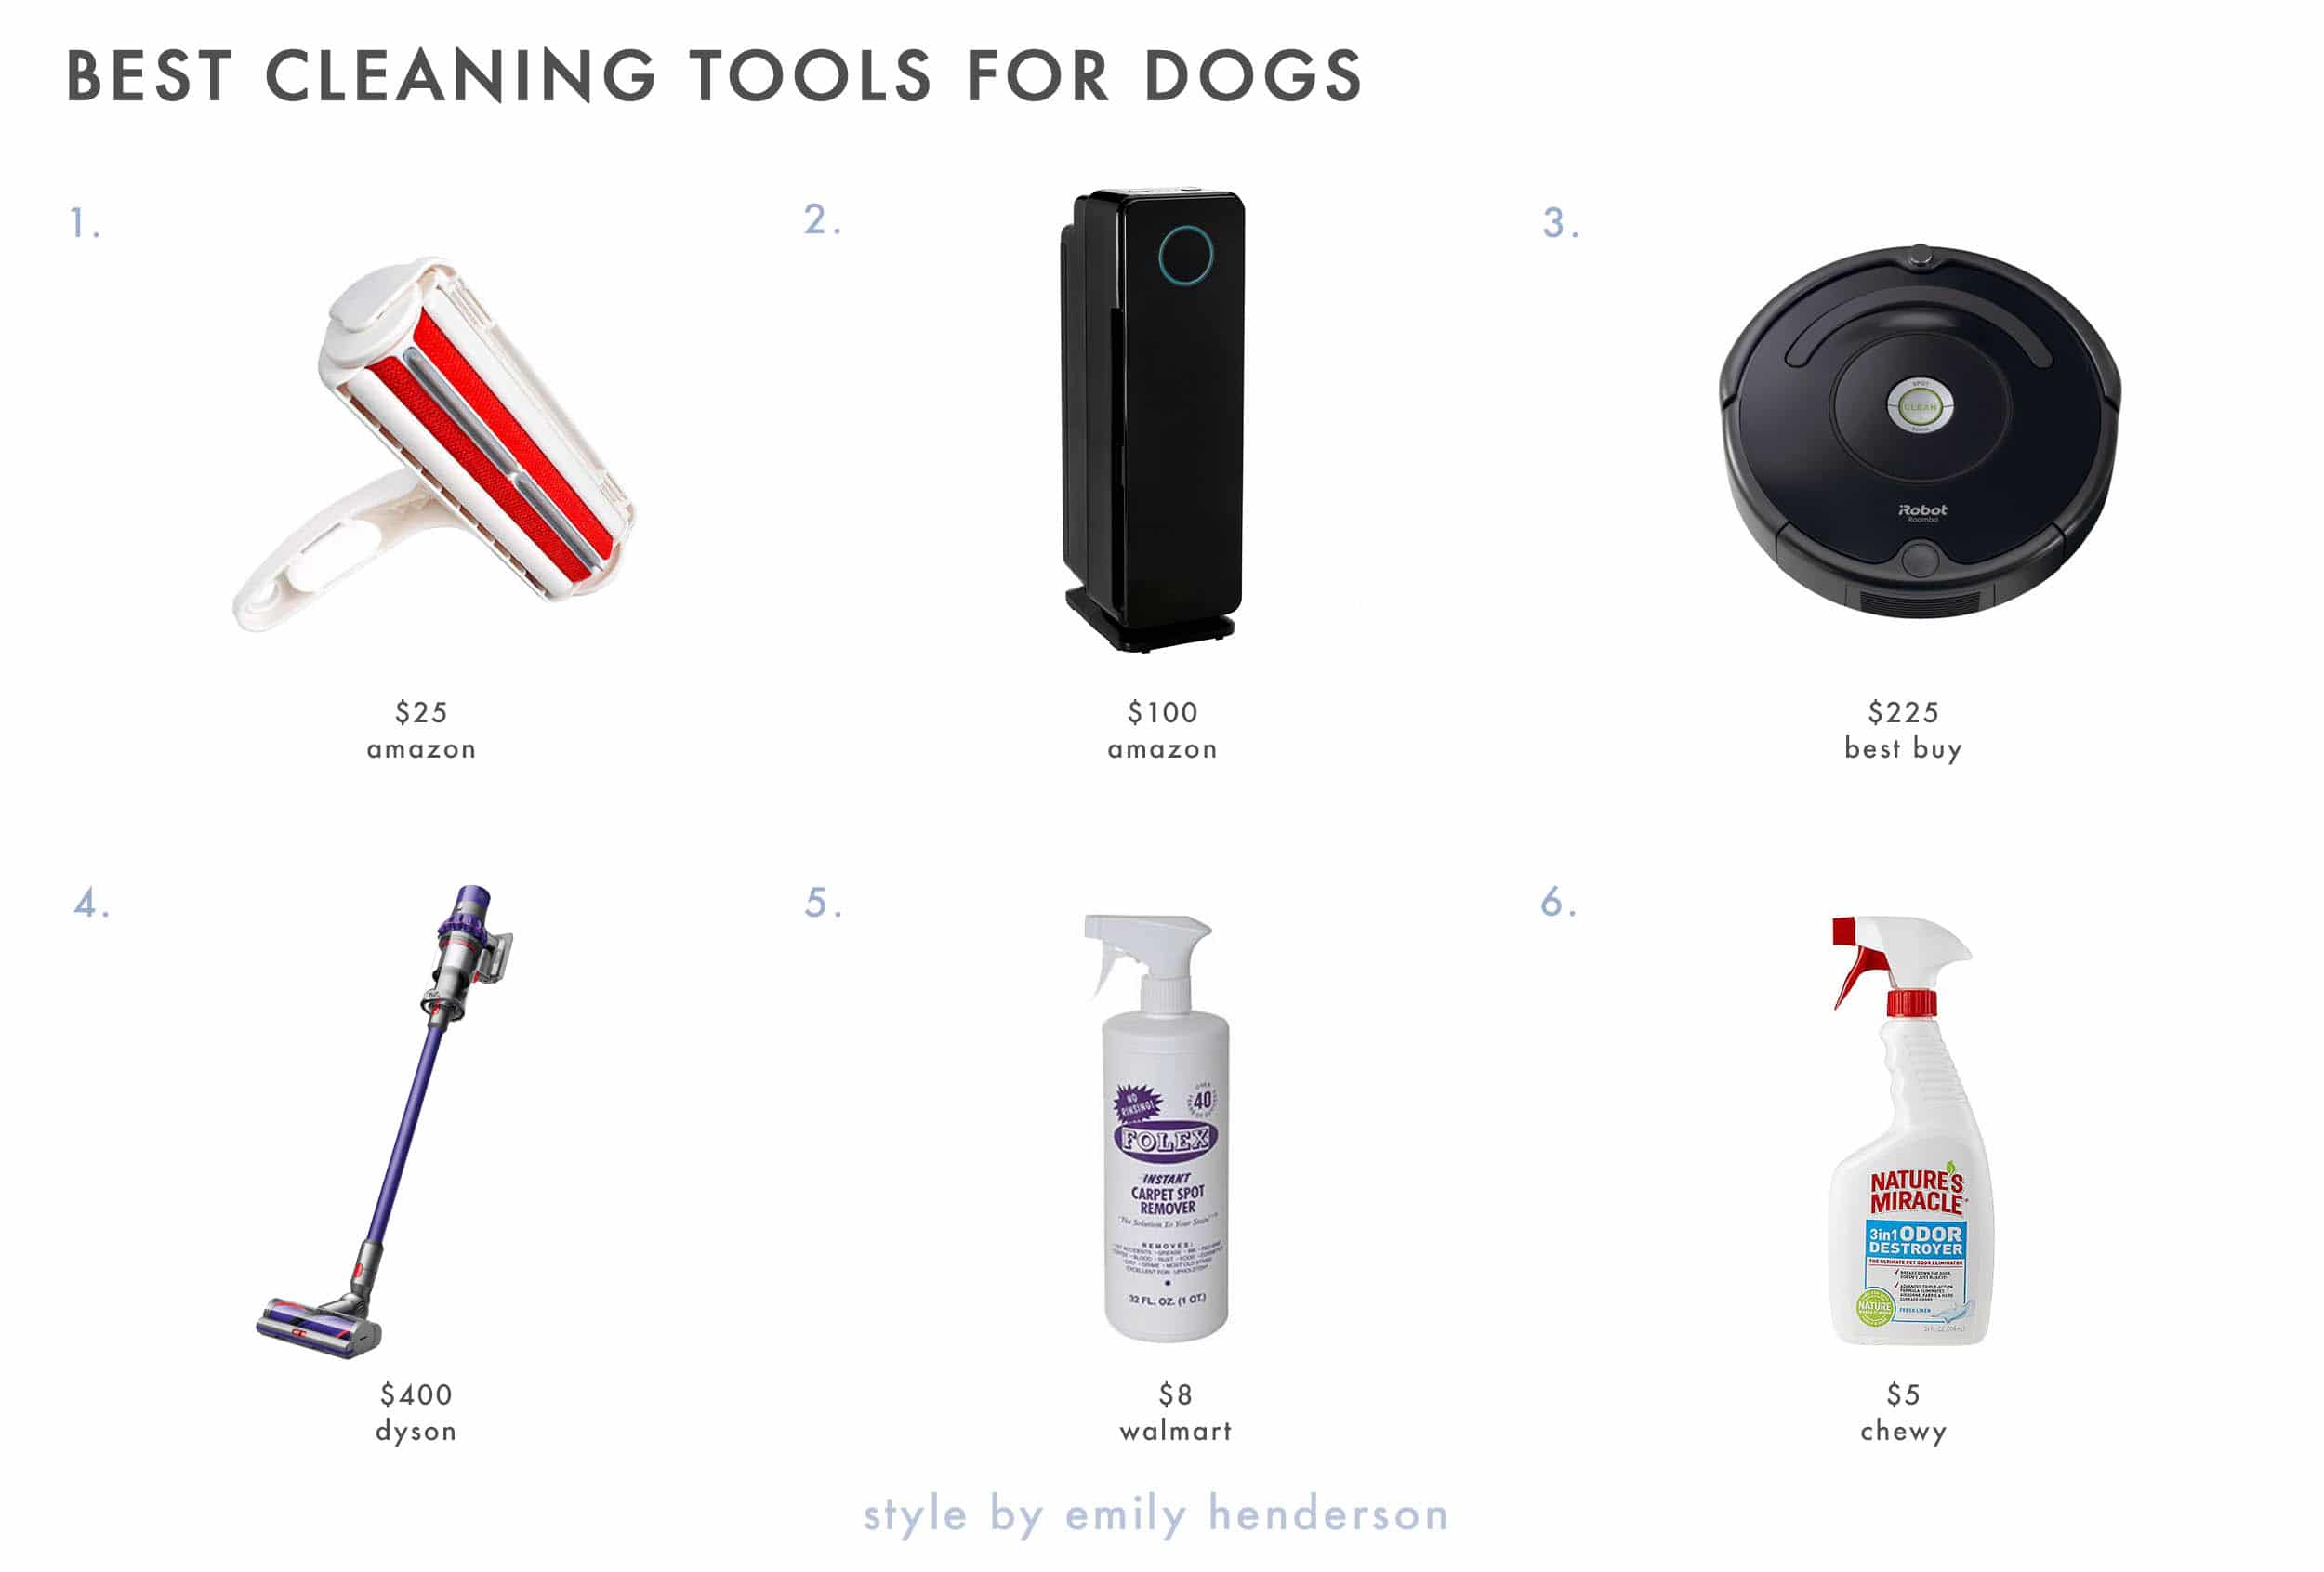 Dog Friendly Cleaning